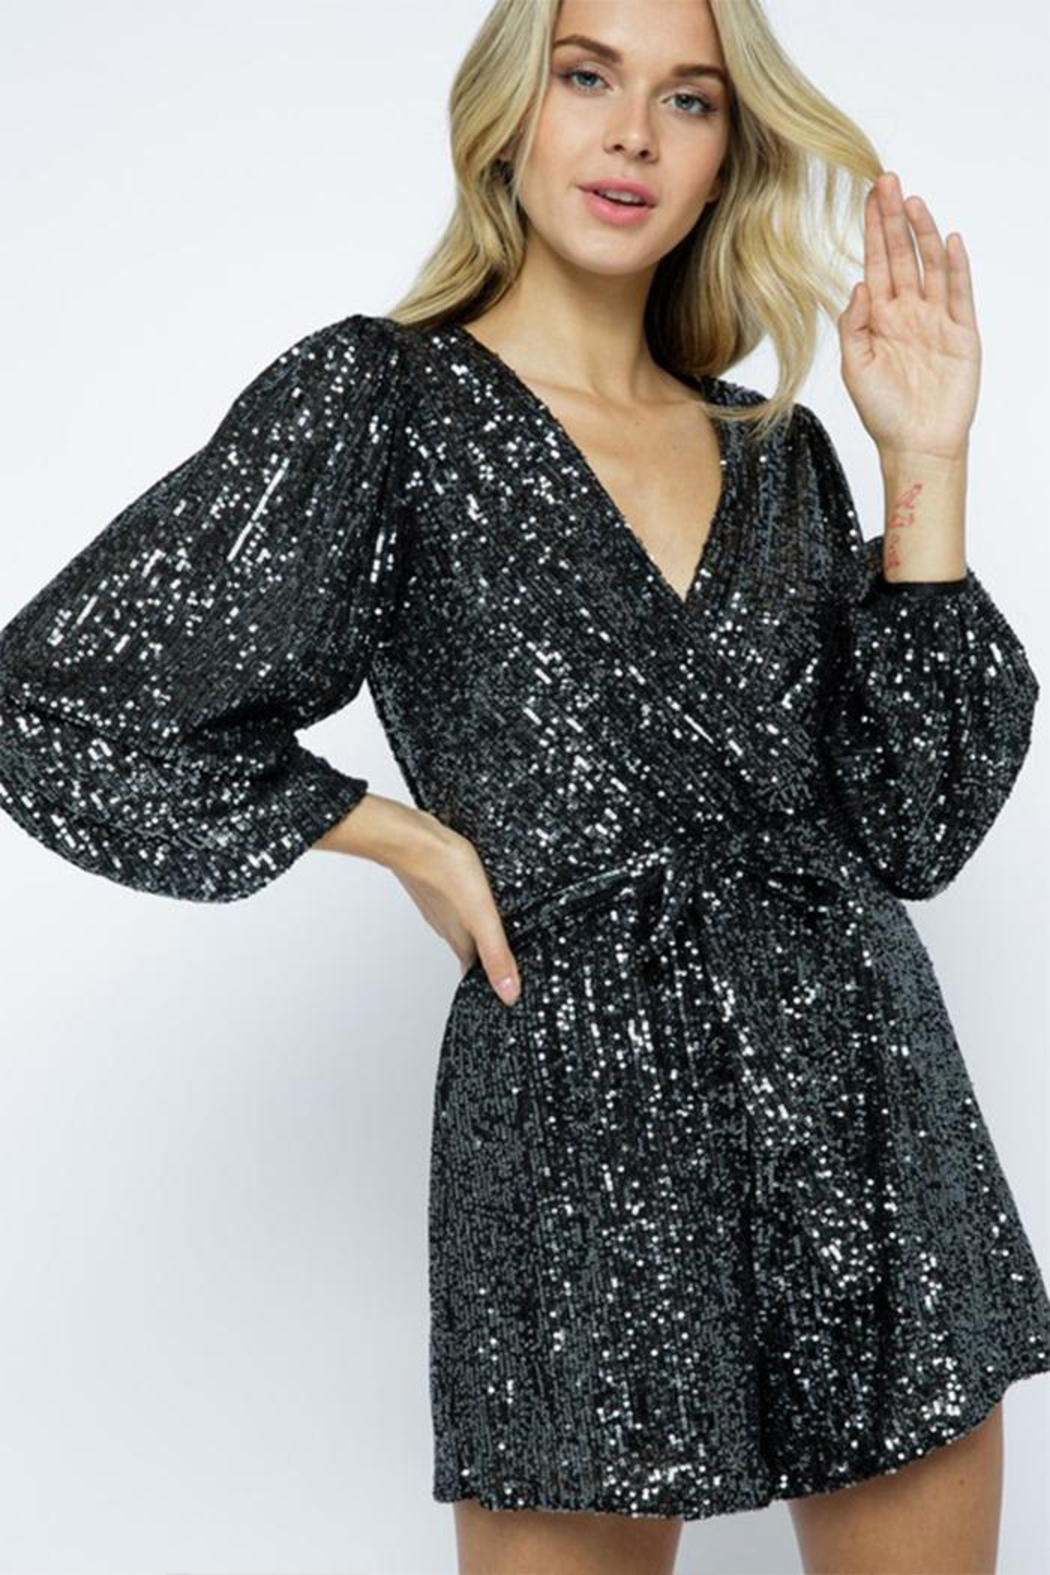 AKAIV Long-Sleeve Sequins Romper - Main Image